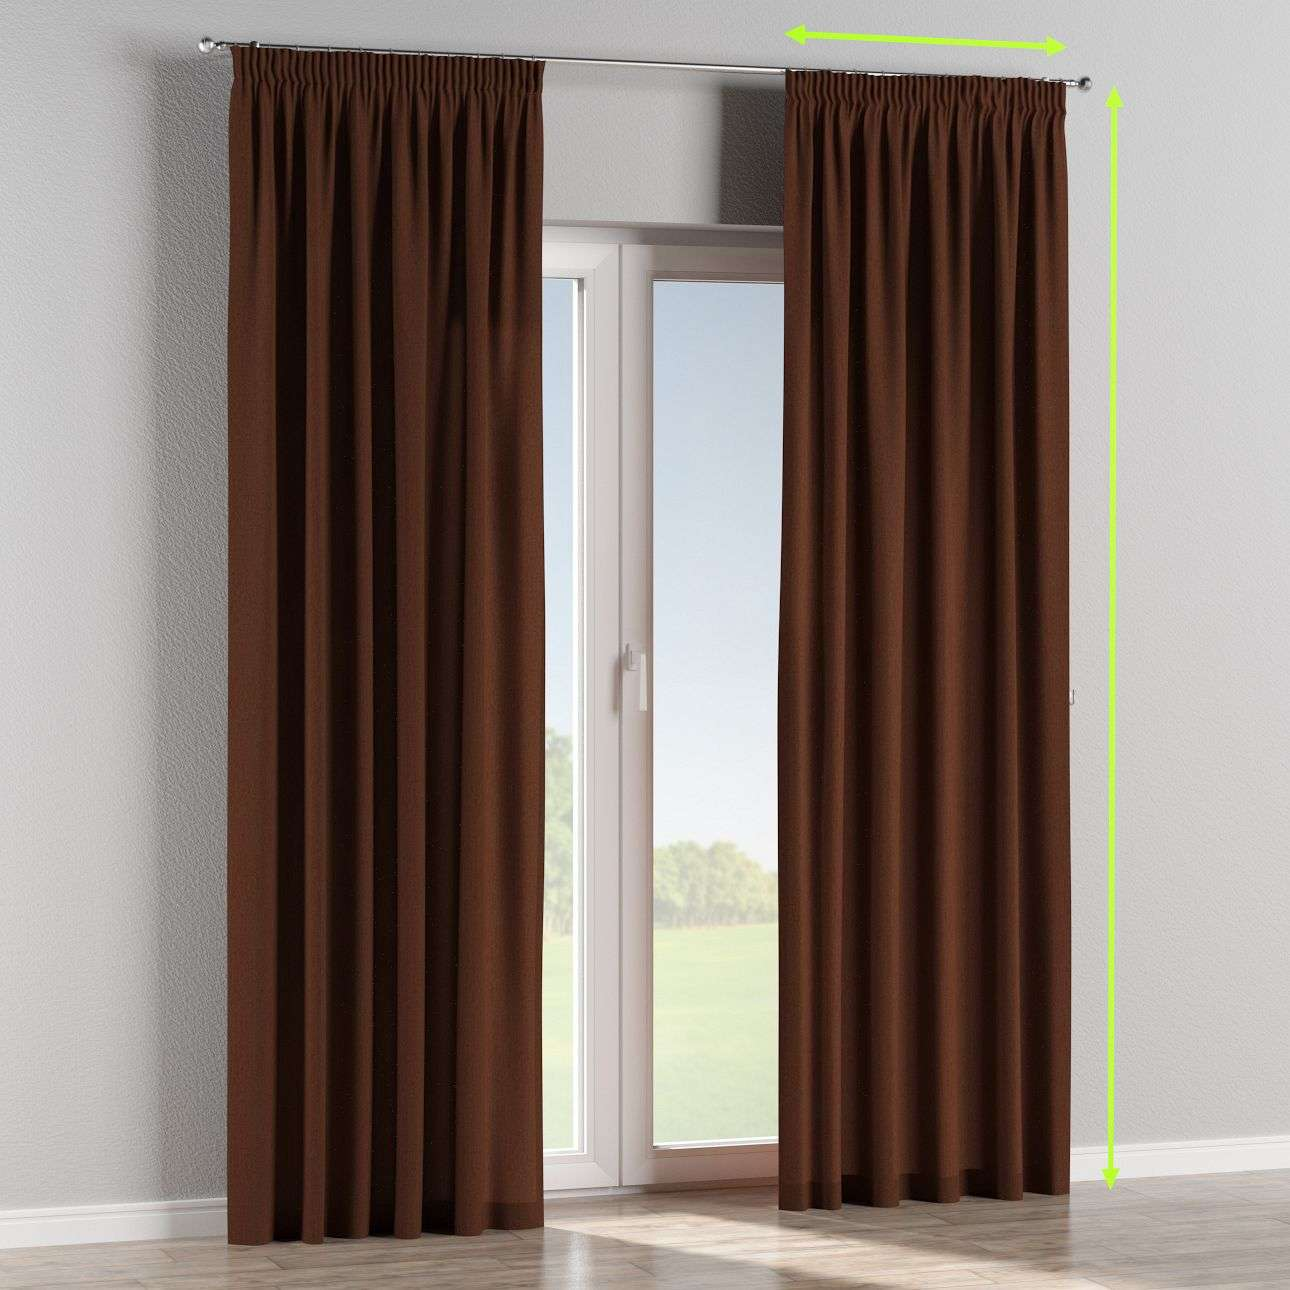 Pencil pleat lined curtains in collection Chenille, fabric: 702-18